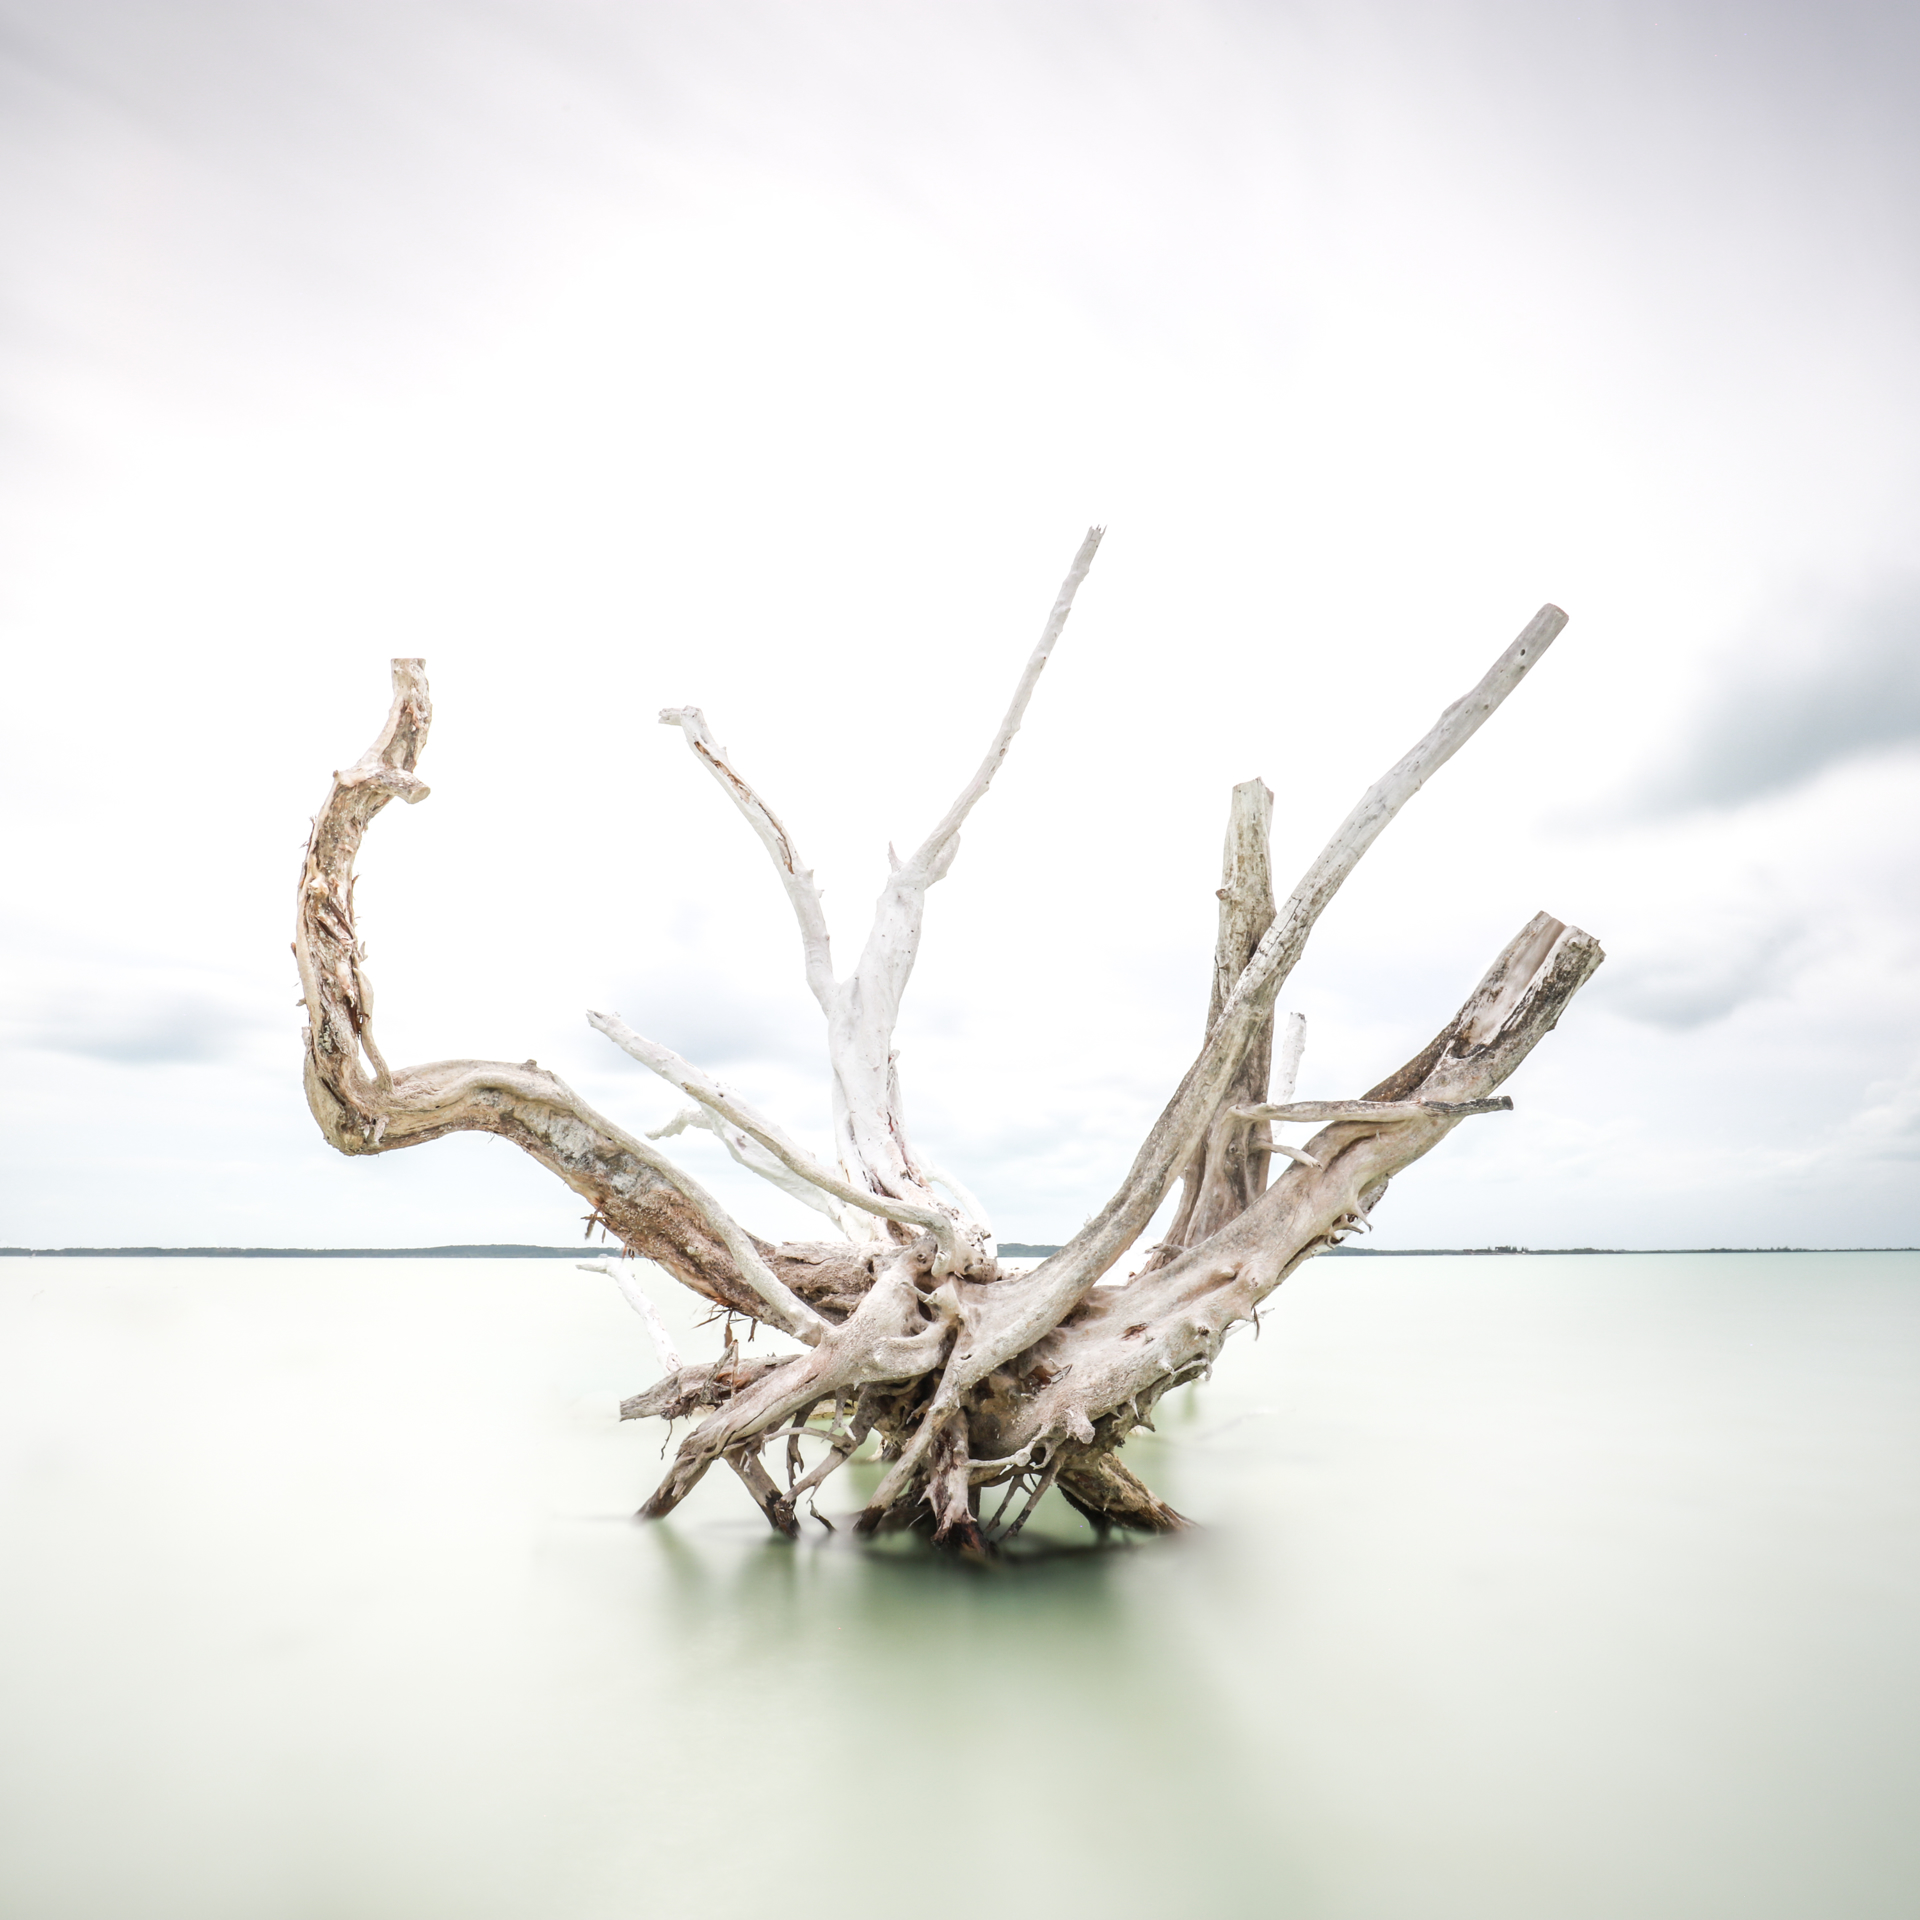 Driftwood at Harbour Island by Keith Ramsdell